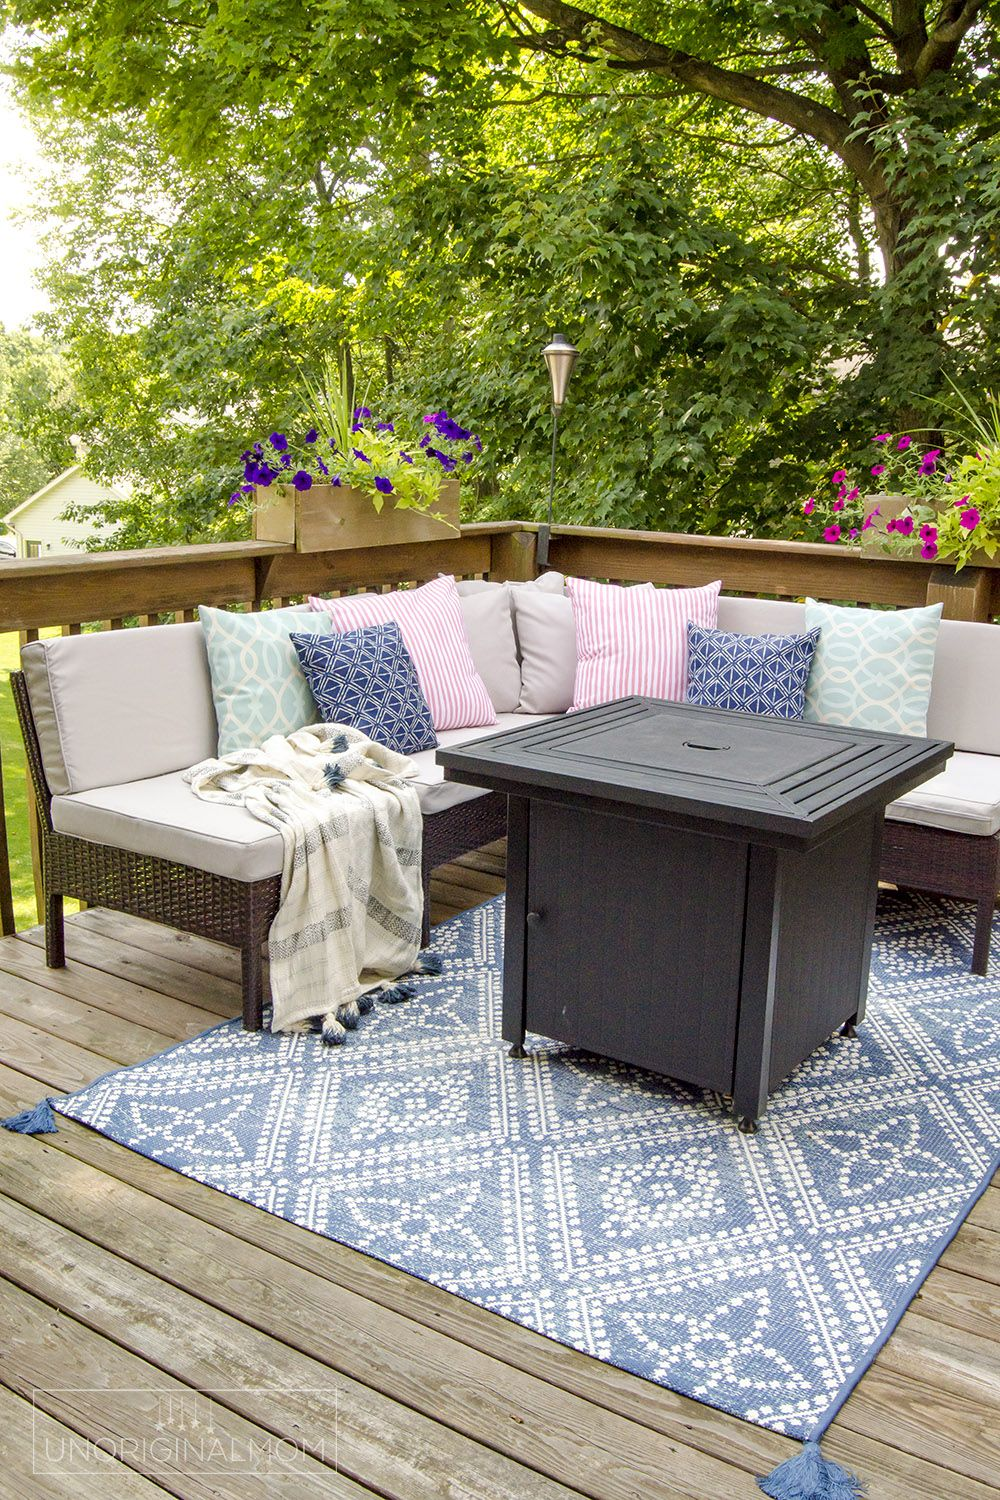 COZY FALL PATIO | Tips for Transitioning Your Space for Fall